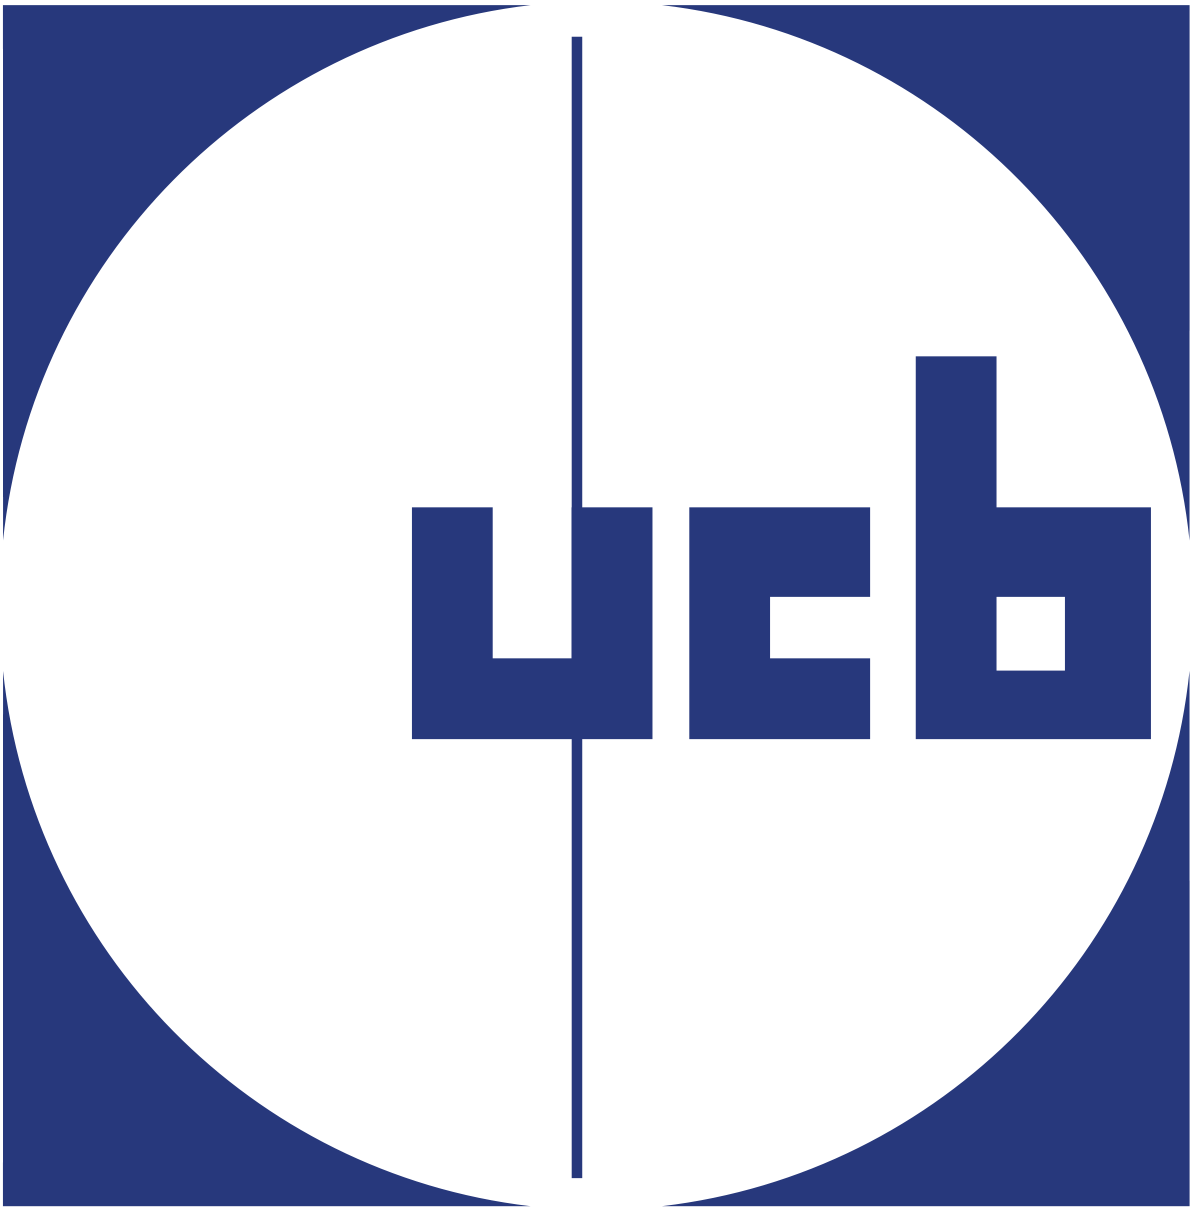 UCB logo - Enabling Expansion